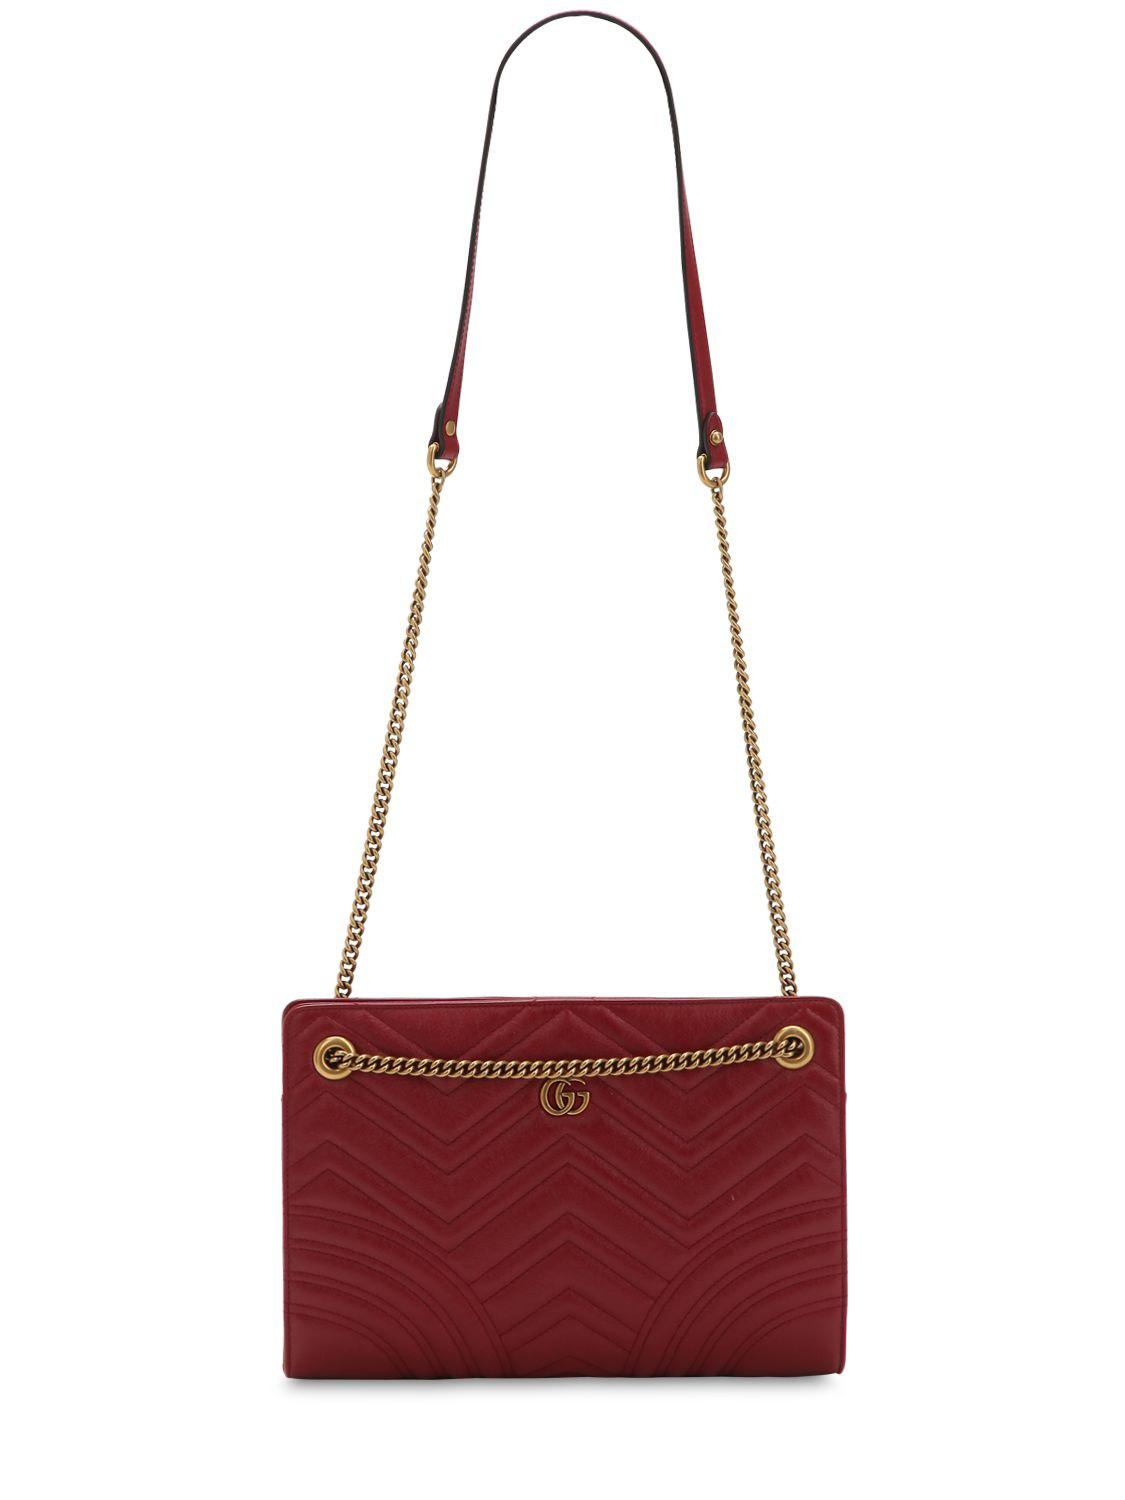 504e0186ae0a2 Lyst - Gucci Gg Marmont Leather Shoulder Bag in Red